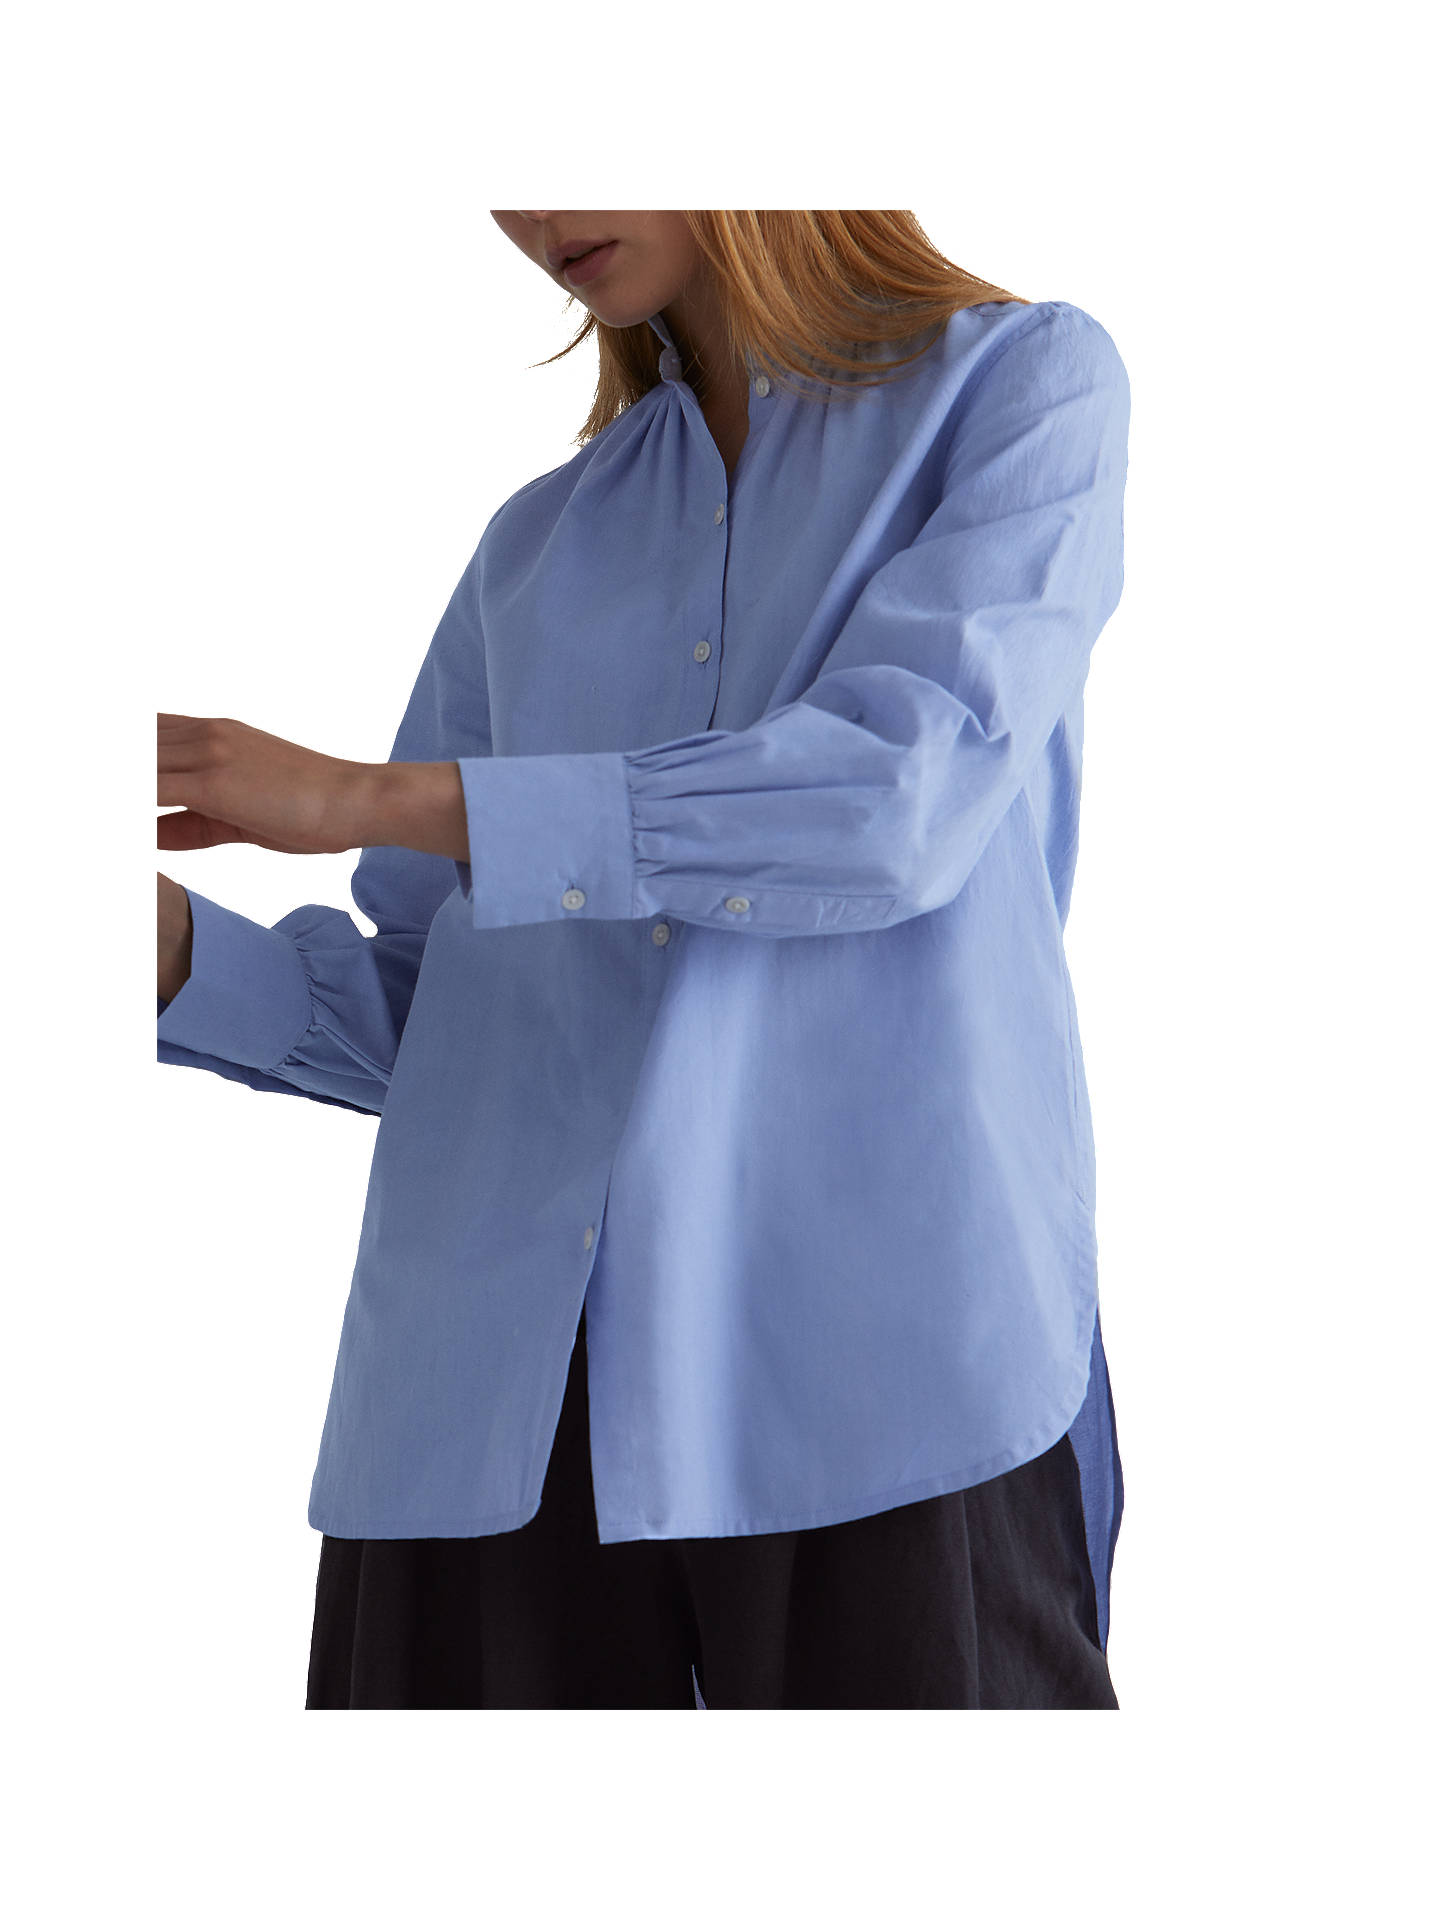 f5a3fca753 Toast Oxford Ruffle Collar Cotton Shirt, Blue at John Lewis & Partners